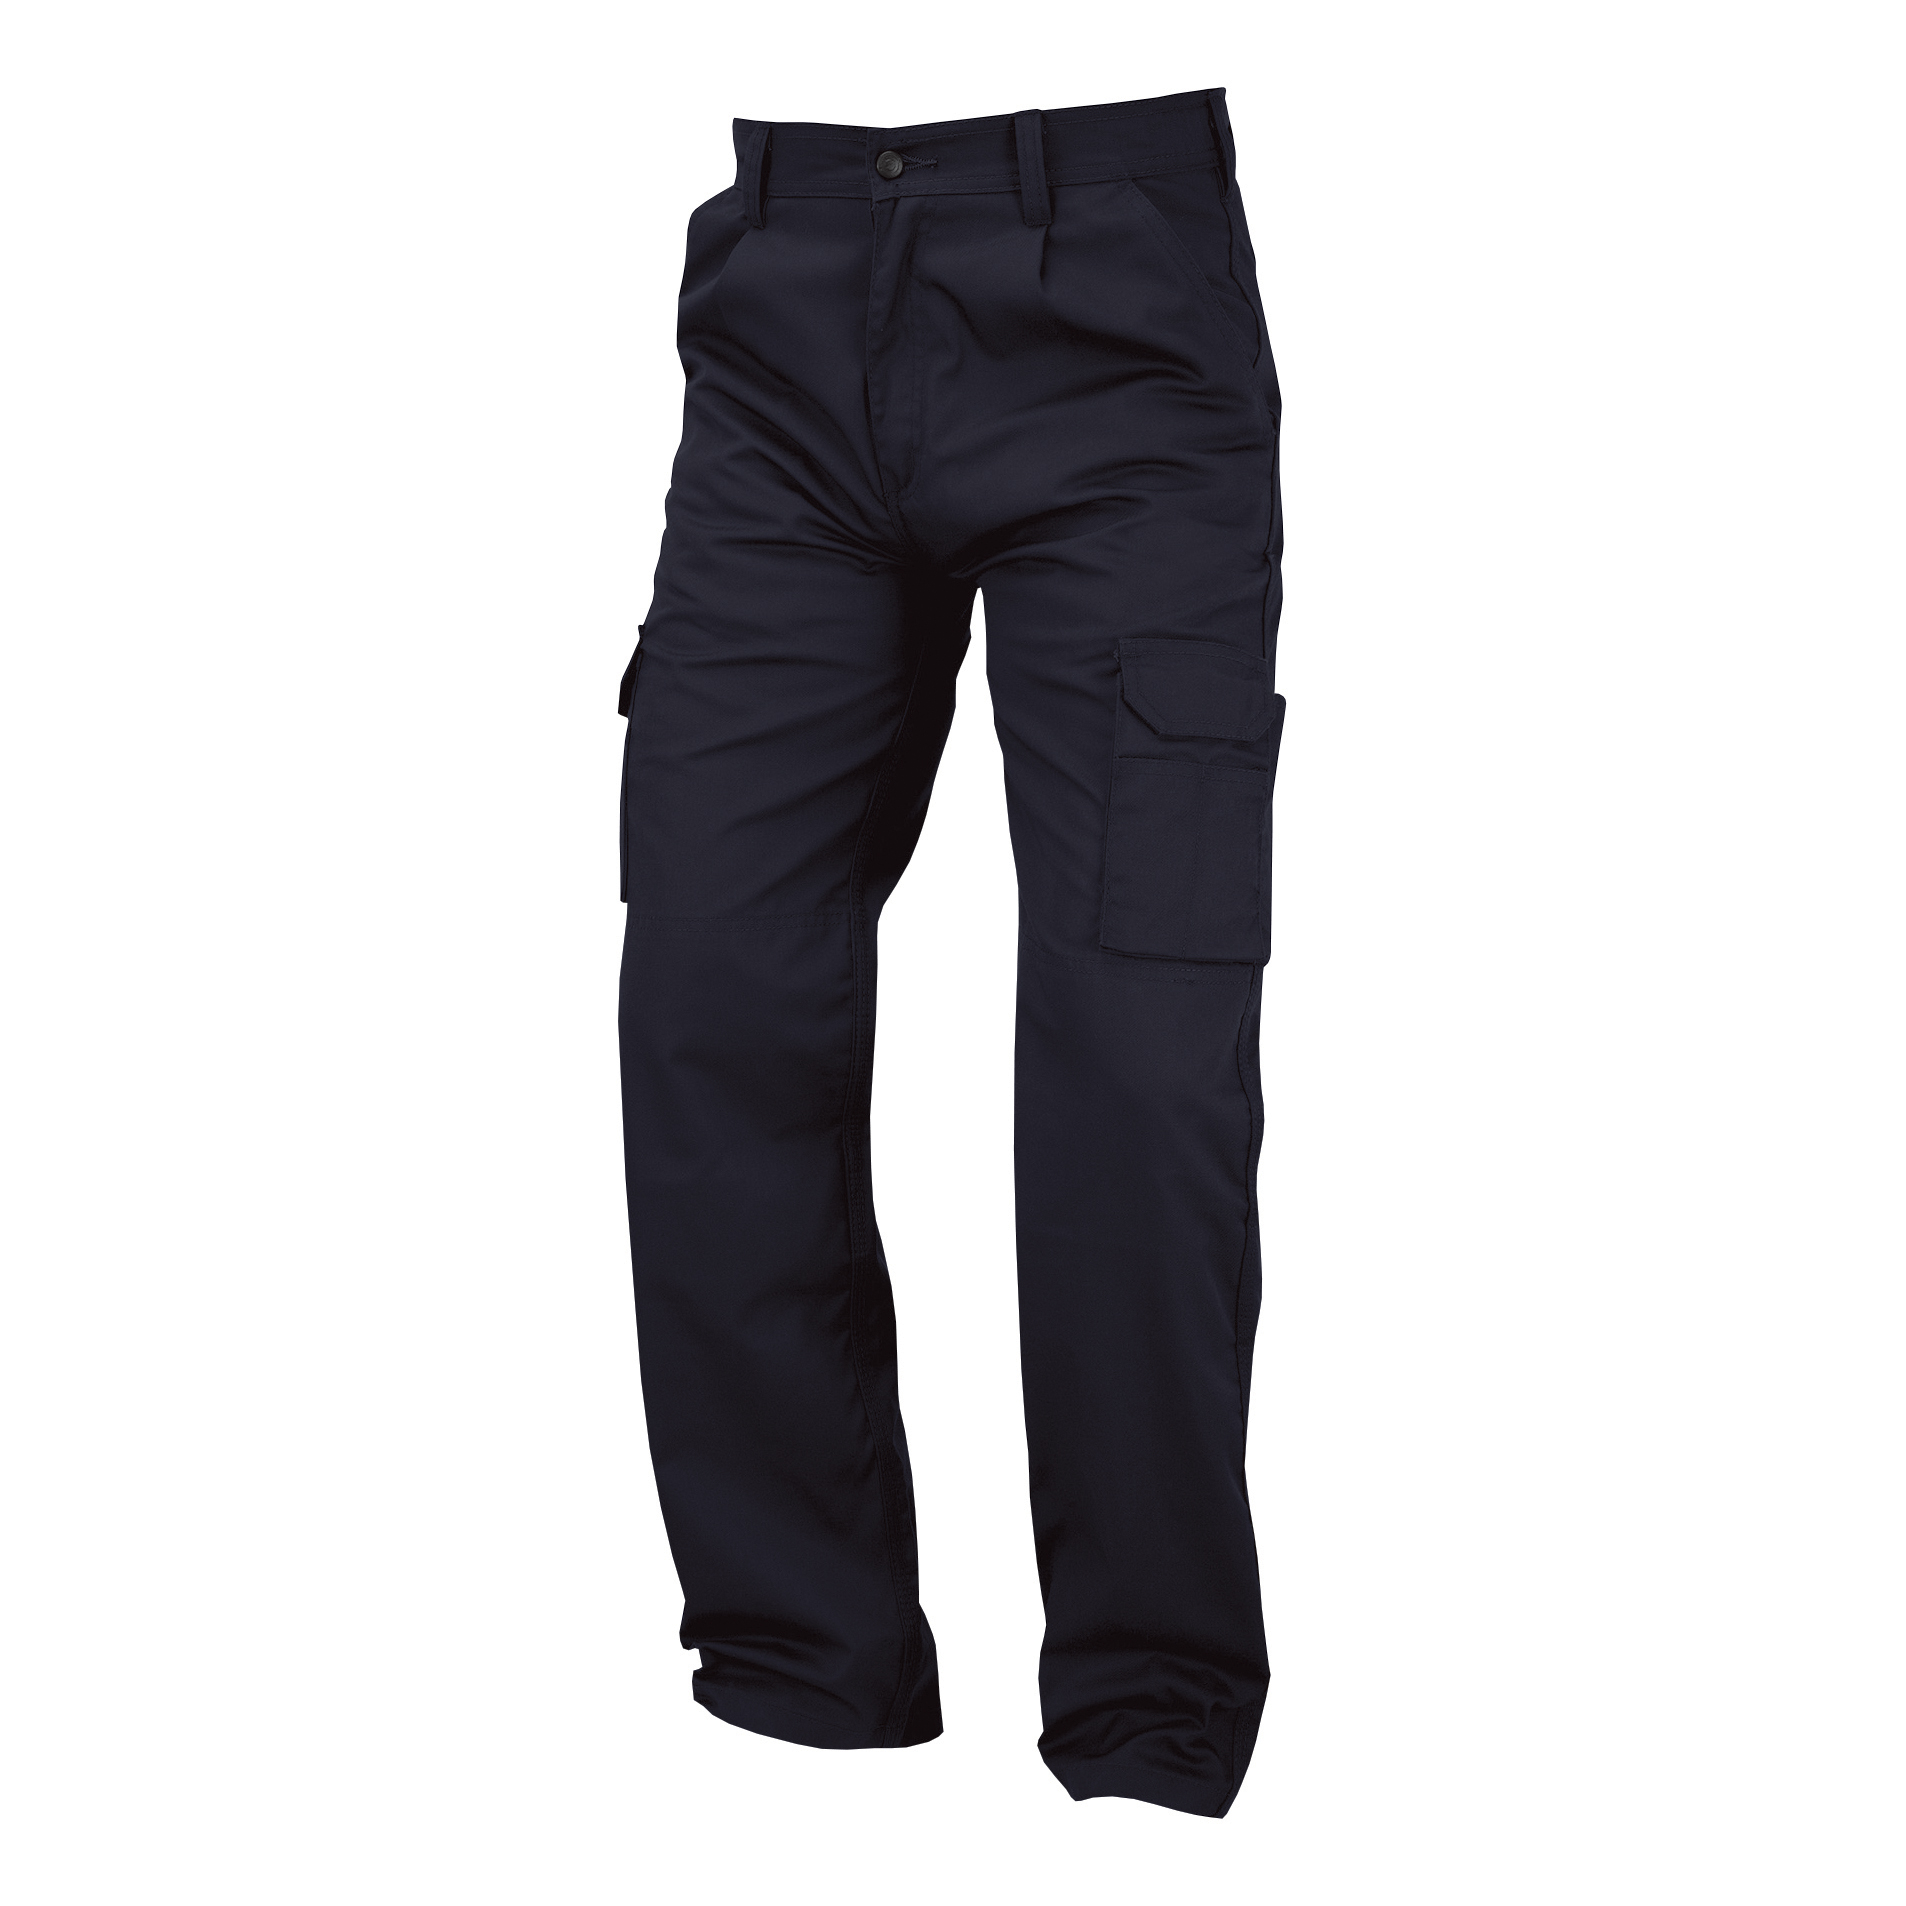 Business Kneepad Combat Trouser Multi-functional Waist 28in Leg 32in Navy